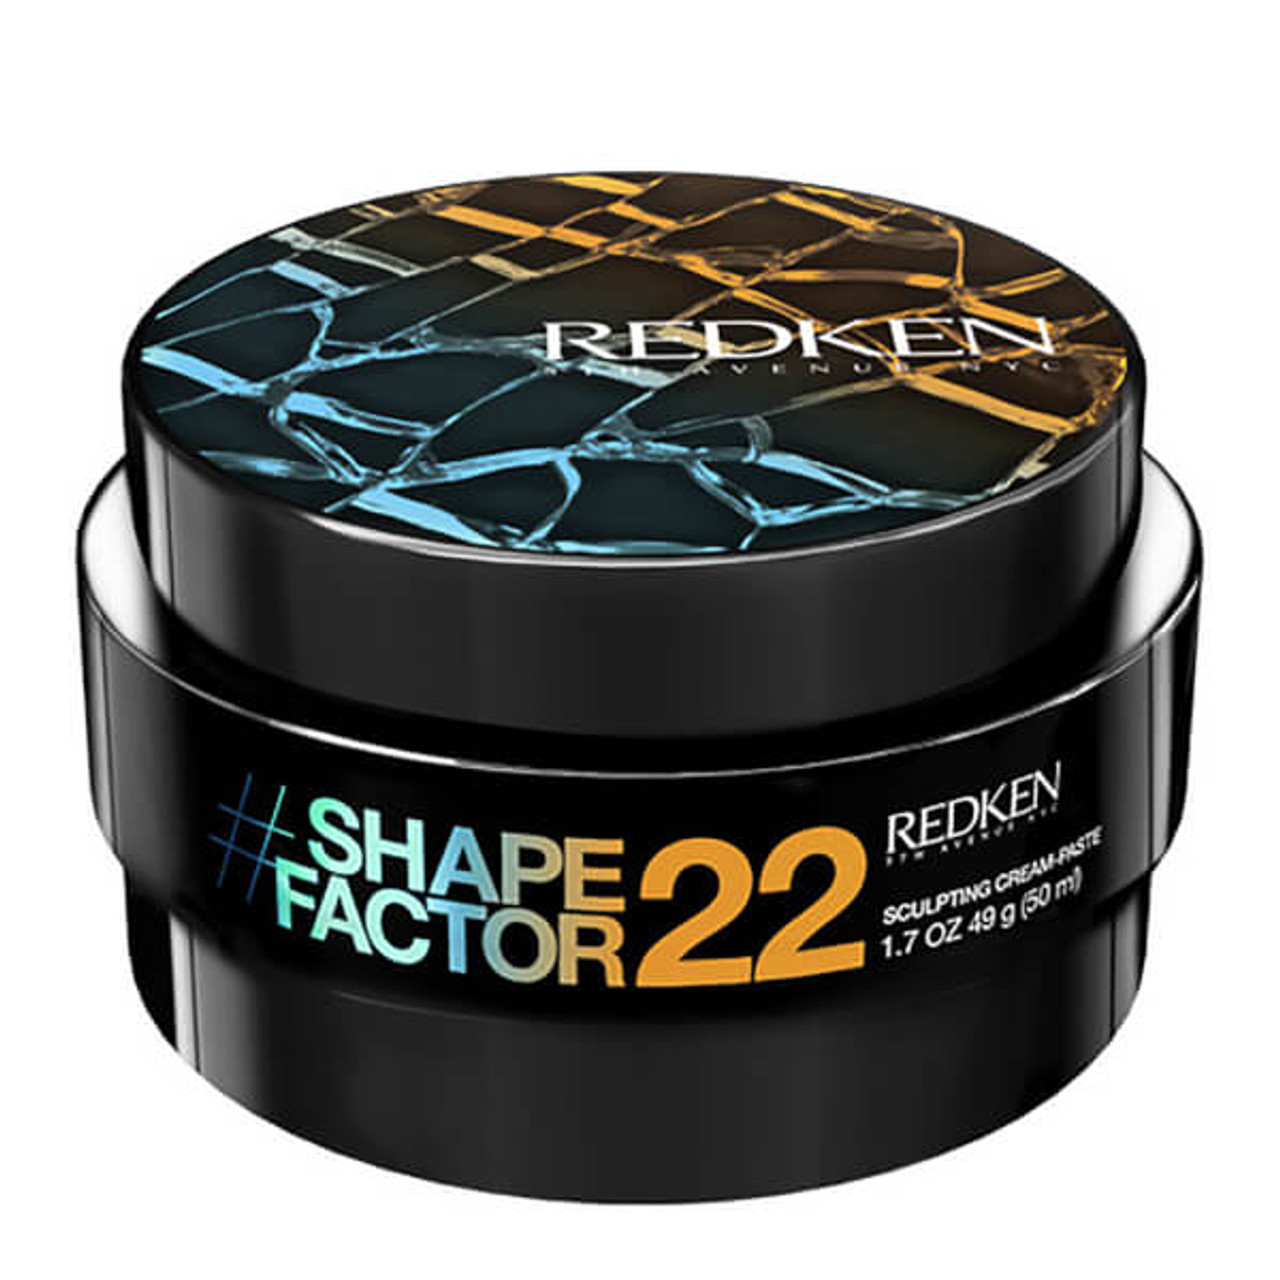 Redken Shape Factor 22 1.7 oz